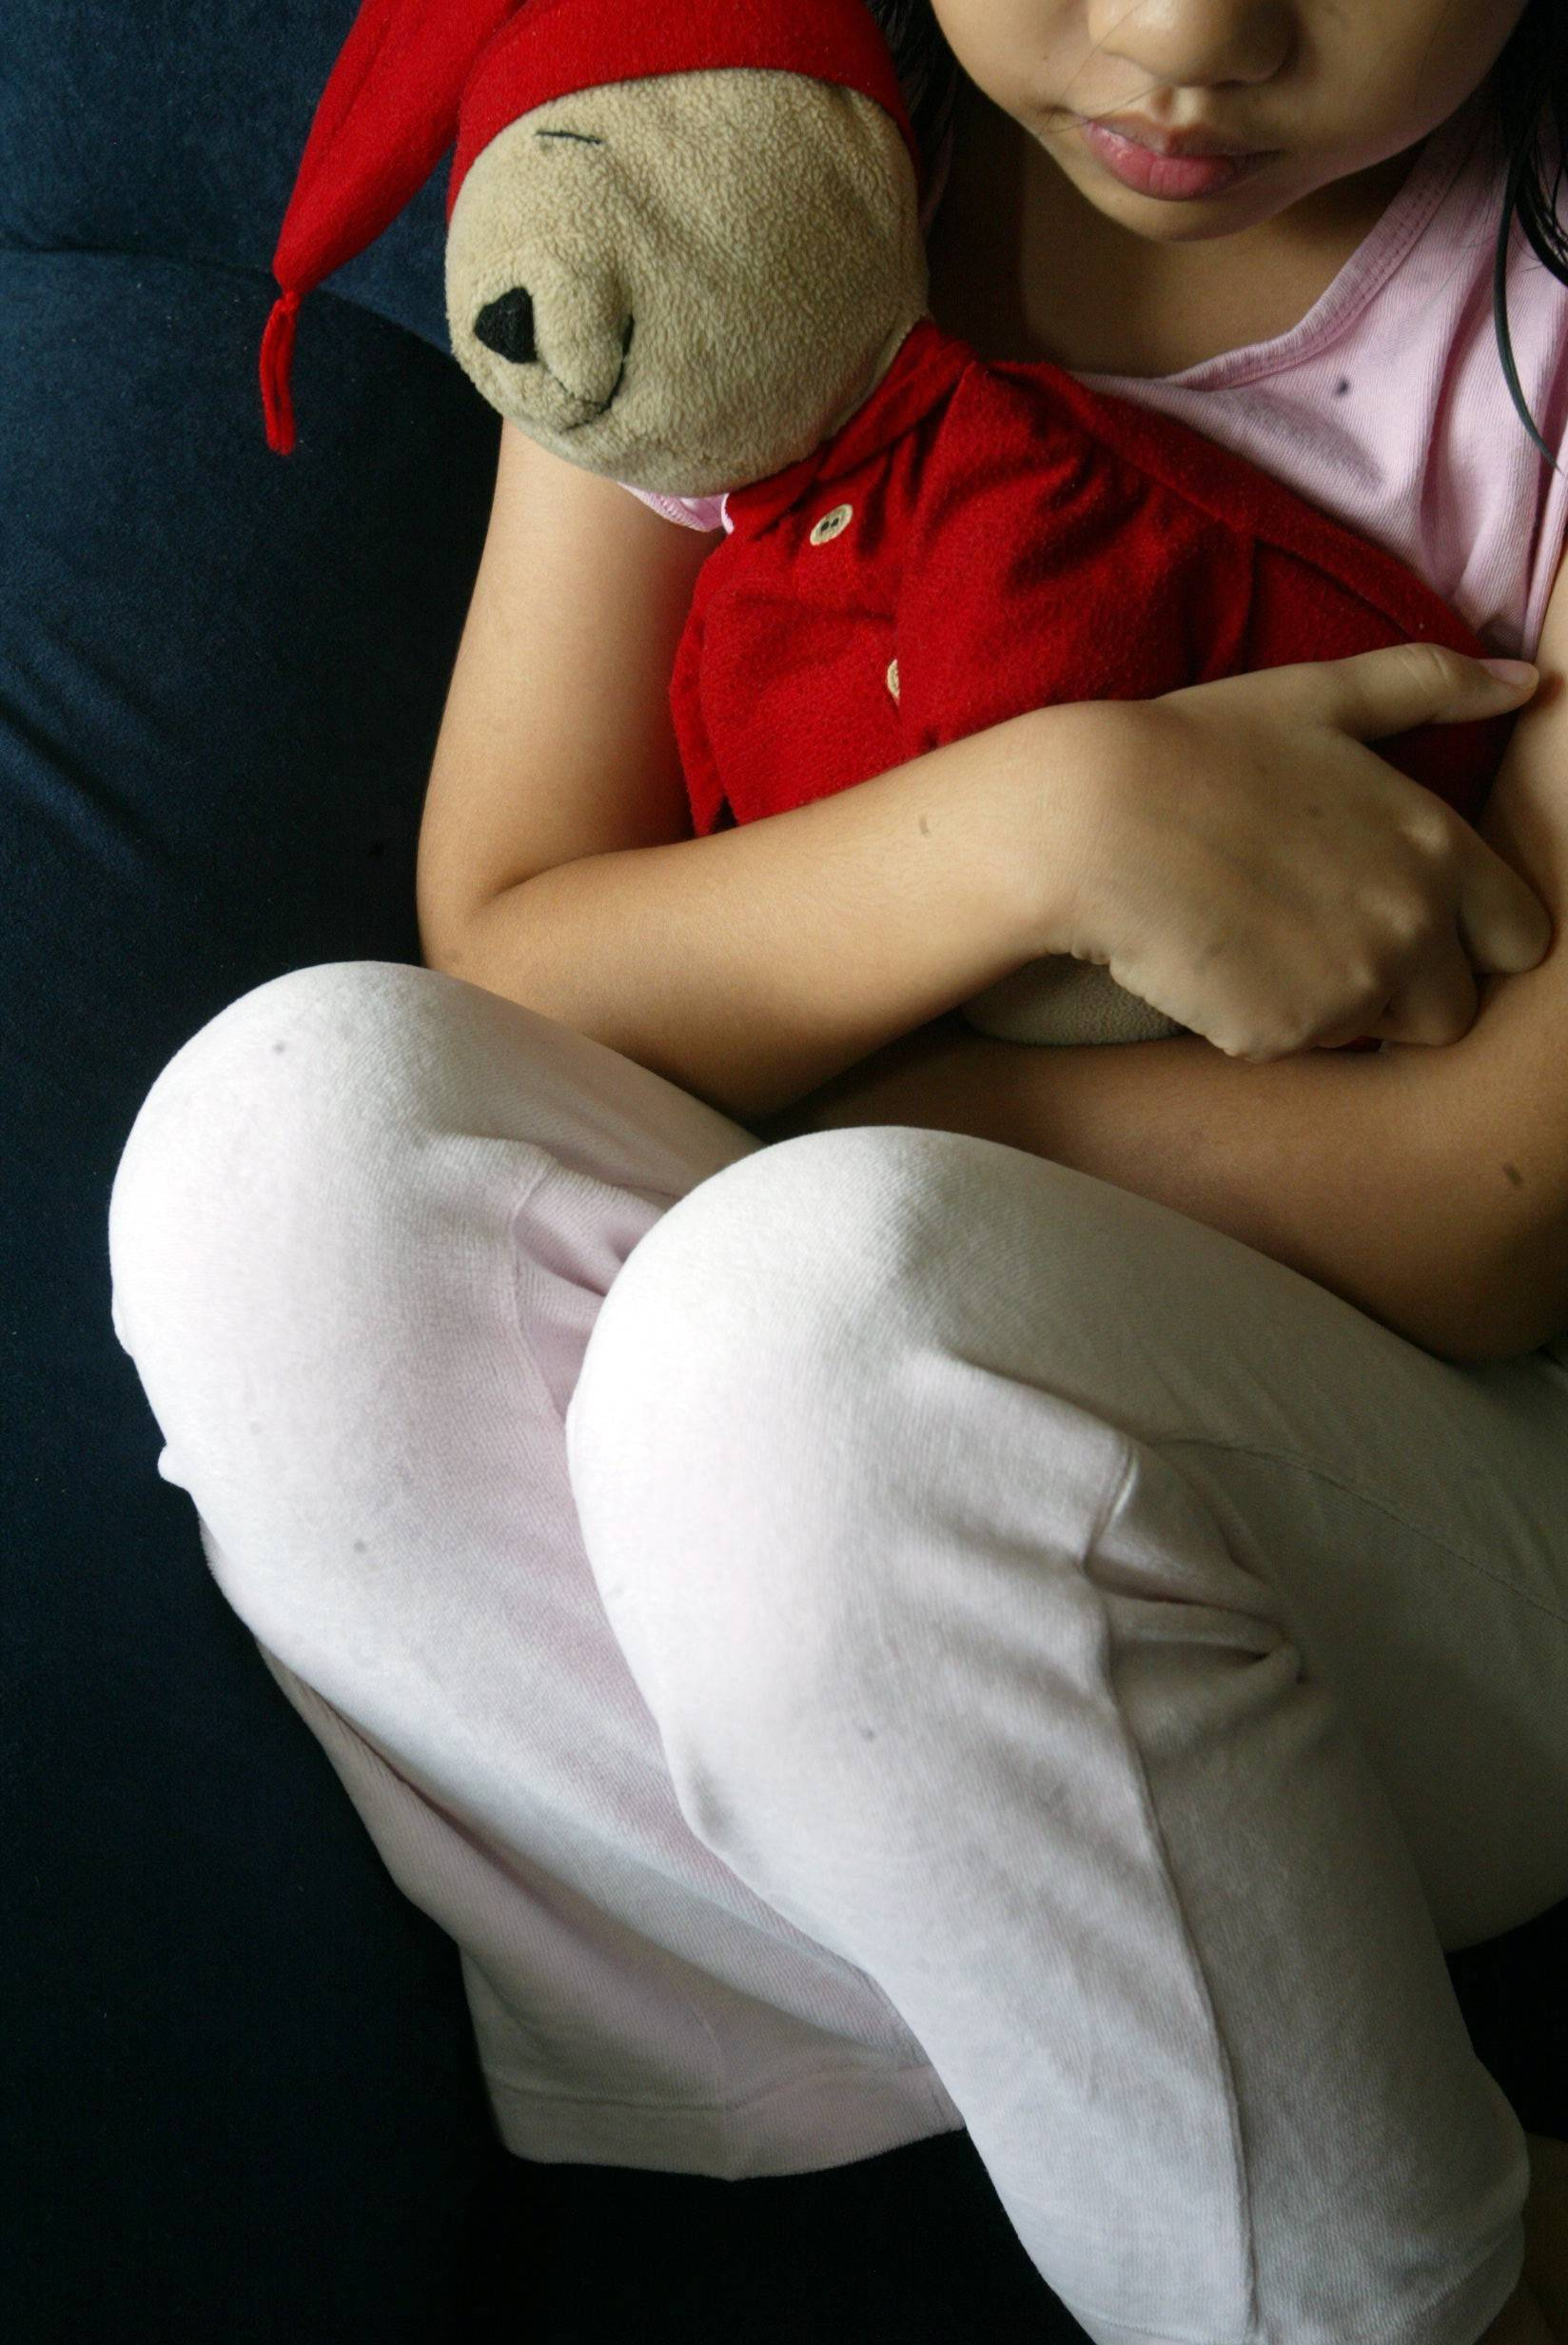 Most sexually abused children are too afraid to speak up about the abuse.